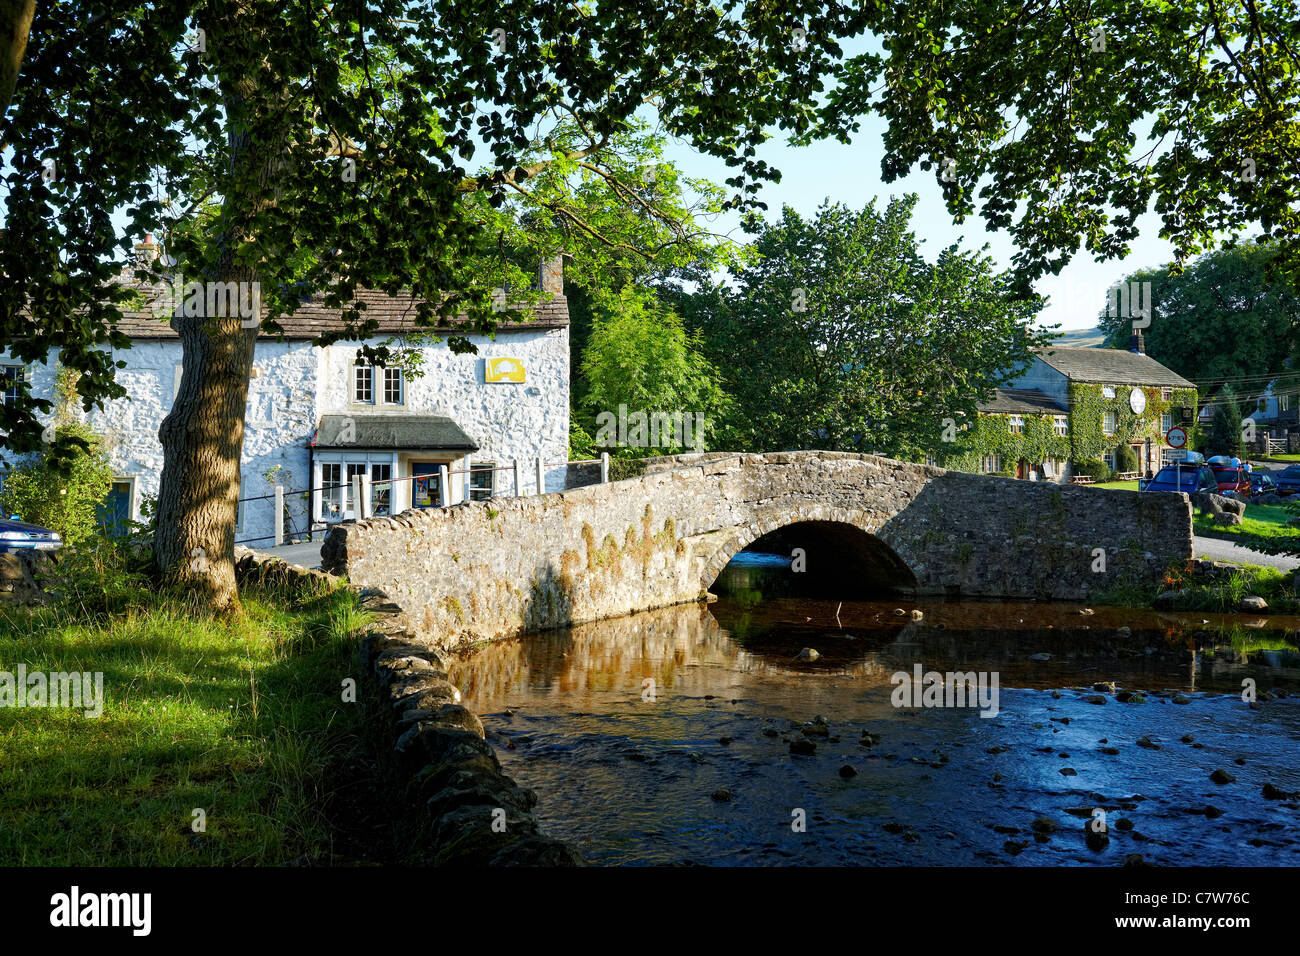 Malham, a village in the Yorkshire Dales National Park - Stock Image